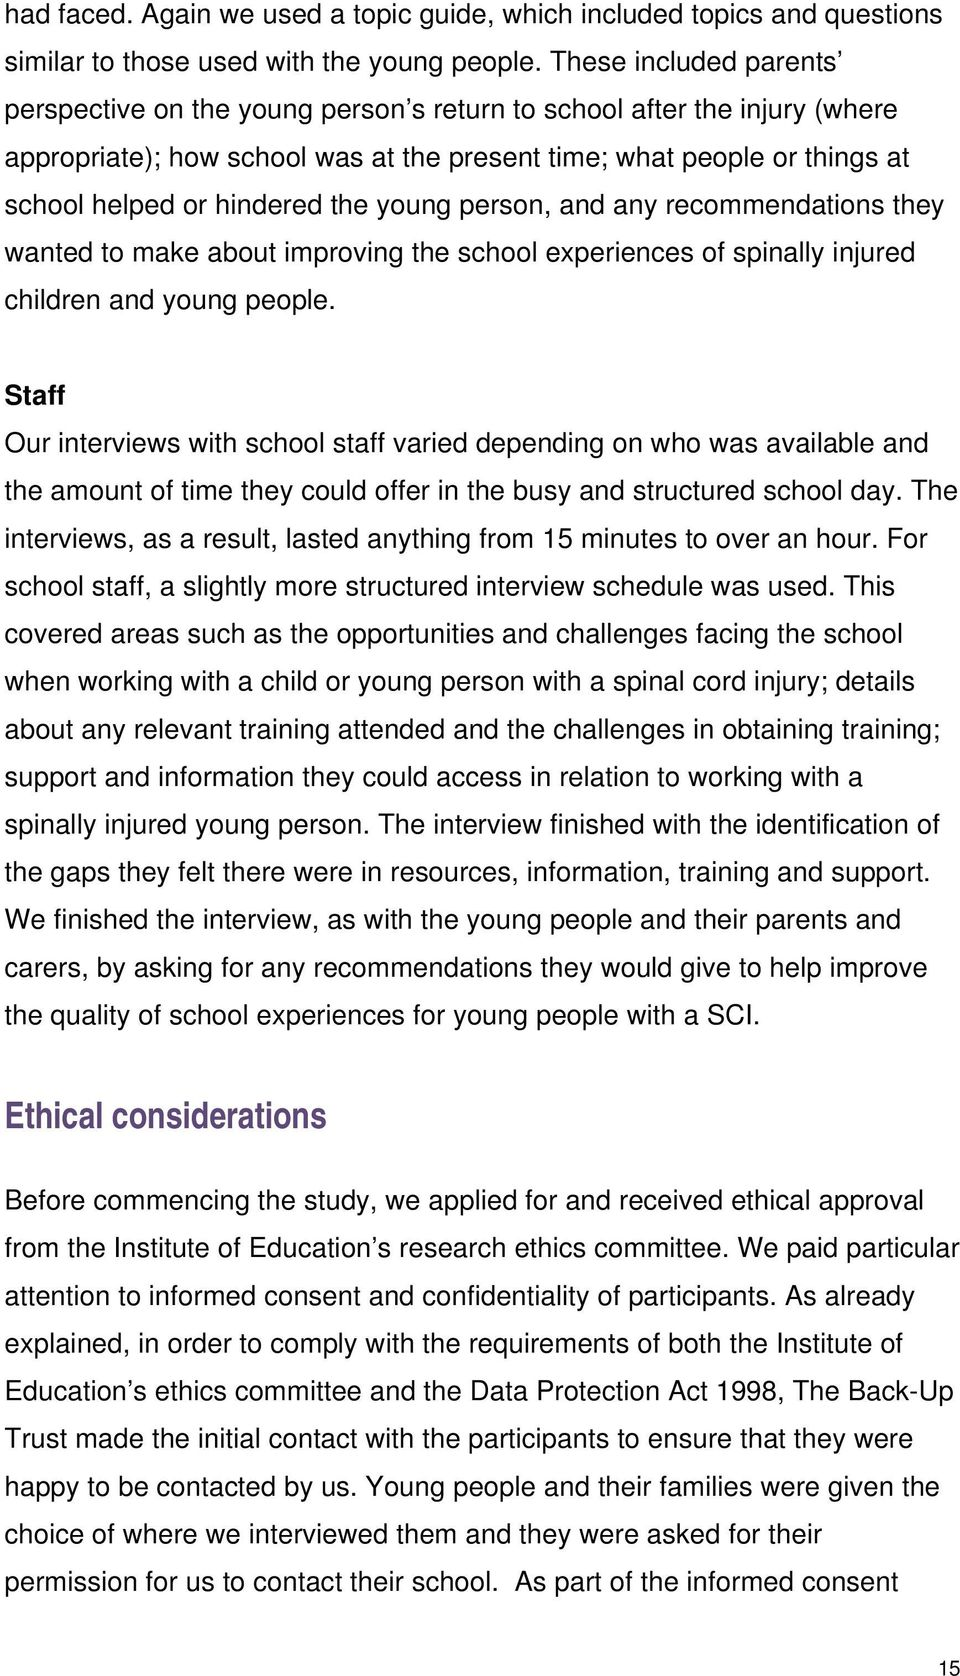 the young person, and any recommendations they wanted to make about improving the school experiences of spinally injured children and young people.